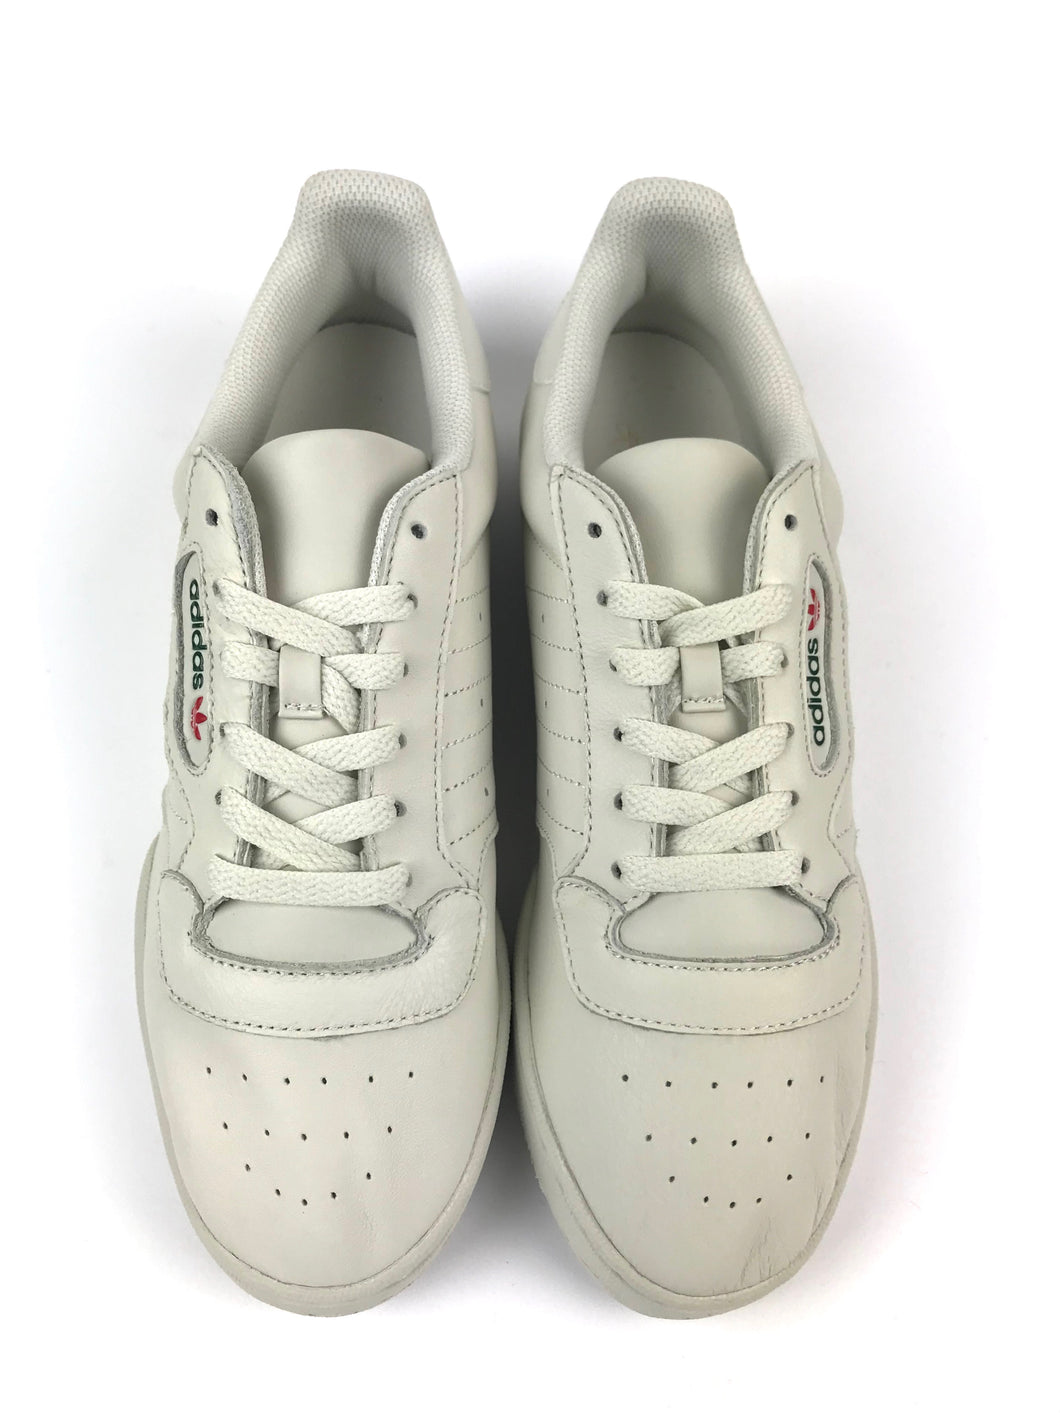 a65ec3c2f78 Yeezy Powerphase Calabasas OG Core White – Kblac18